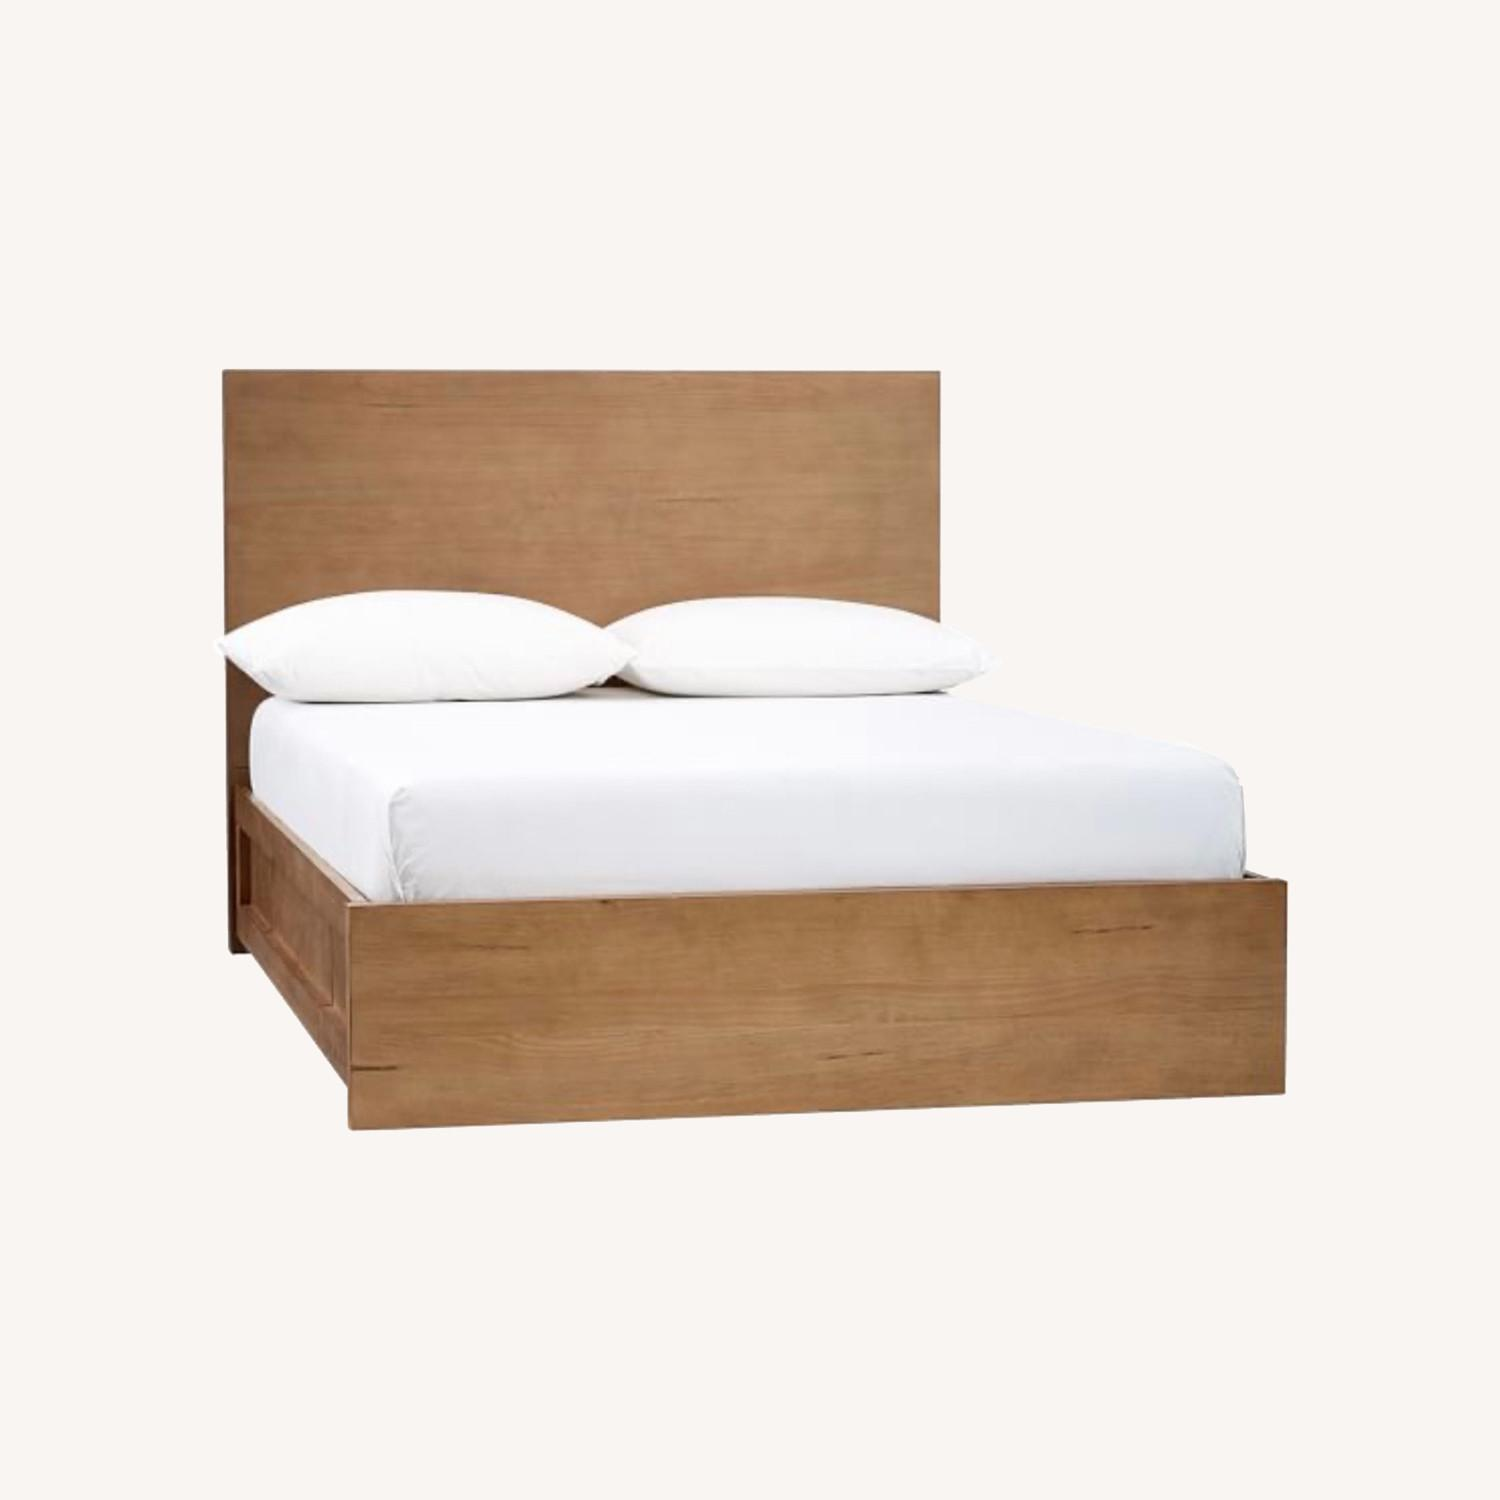 Pottery Barn Full Size Dover Storage Bed - image-0